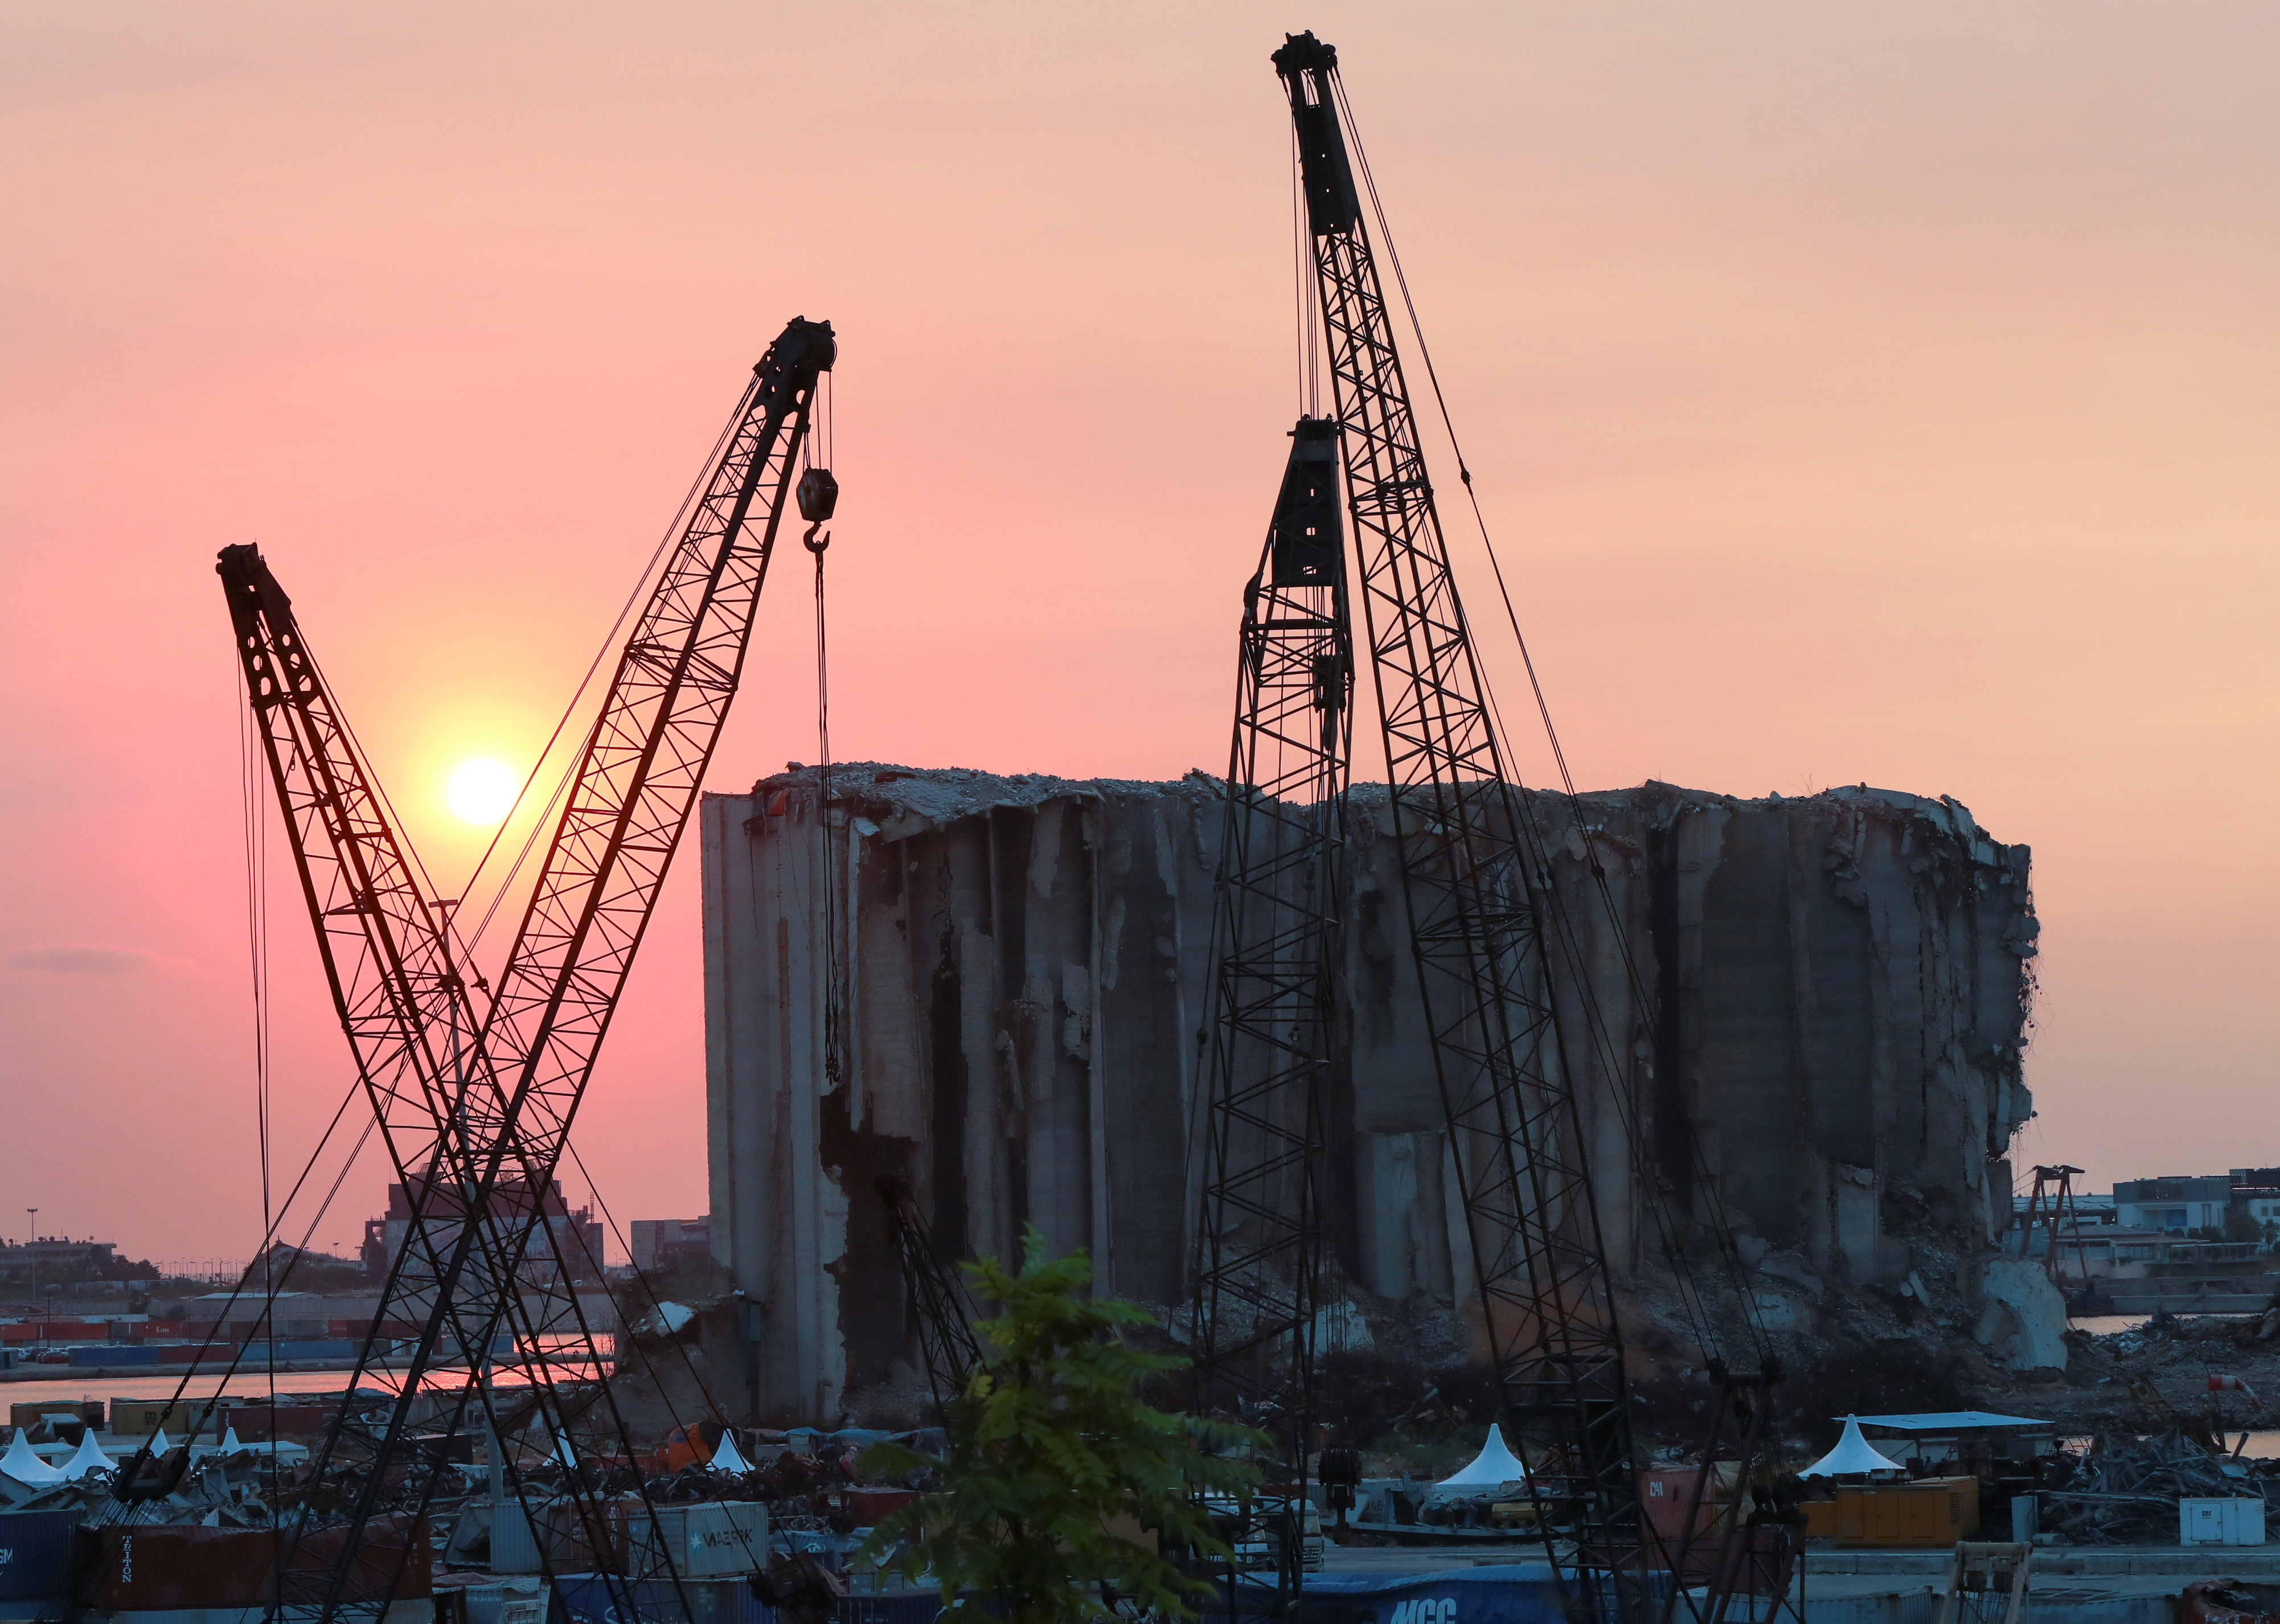 A view shows the grain silo that was damaged during last year's Beirut port blast, during sunset in Beirut, Lebanon, July 29, 2021. Picture taken July 29, 2021. REUTERS/Mohamed Azakir